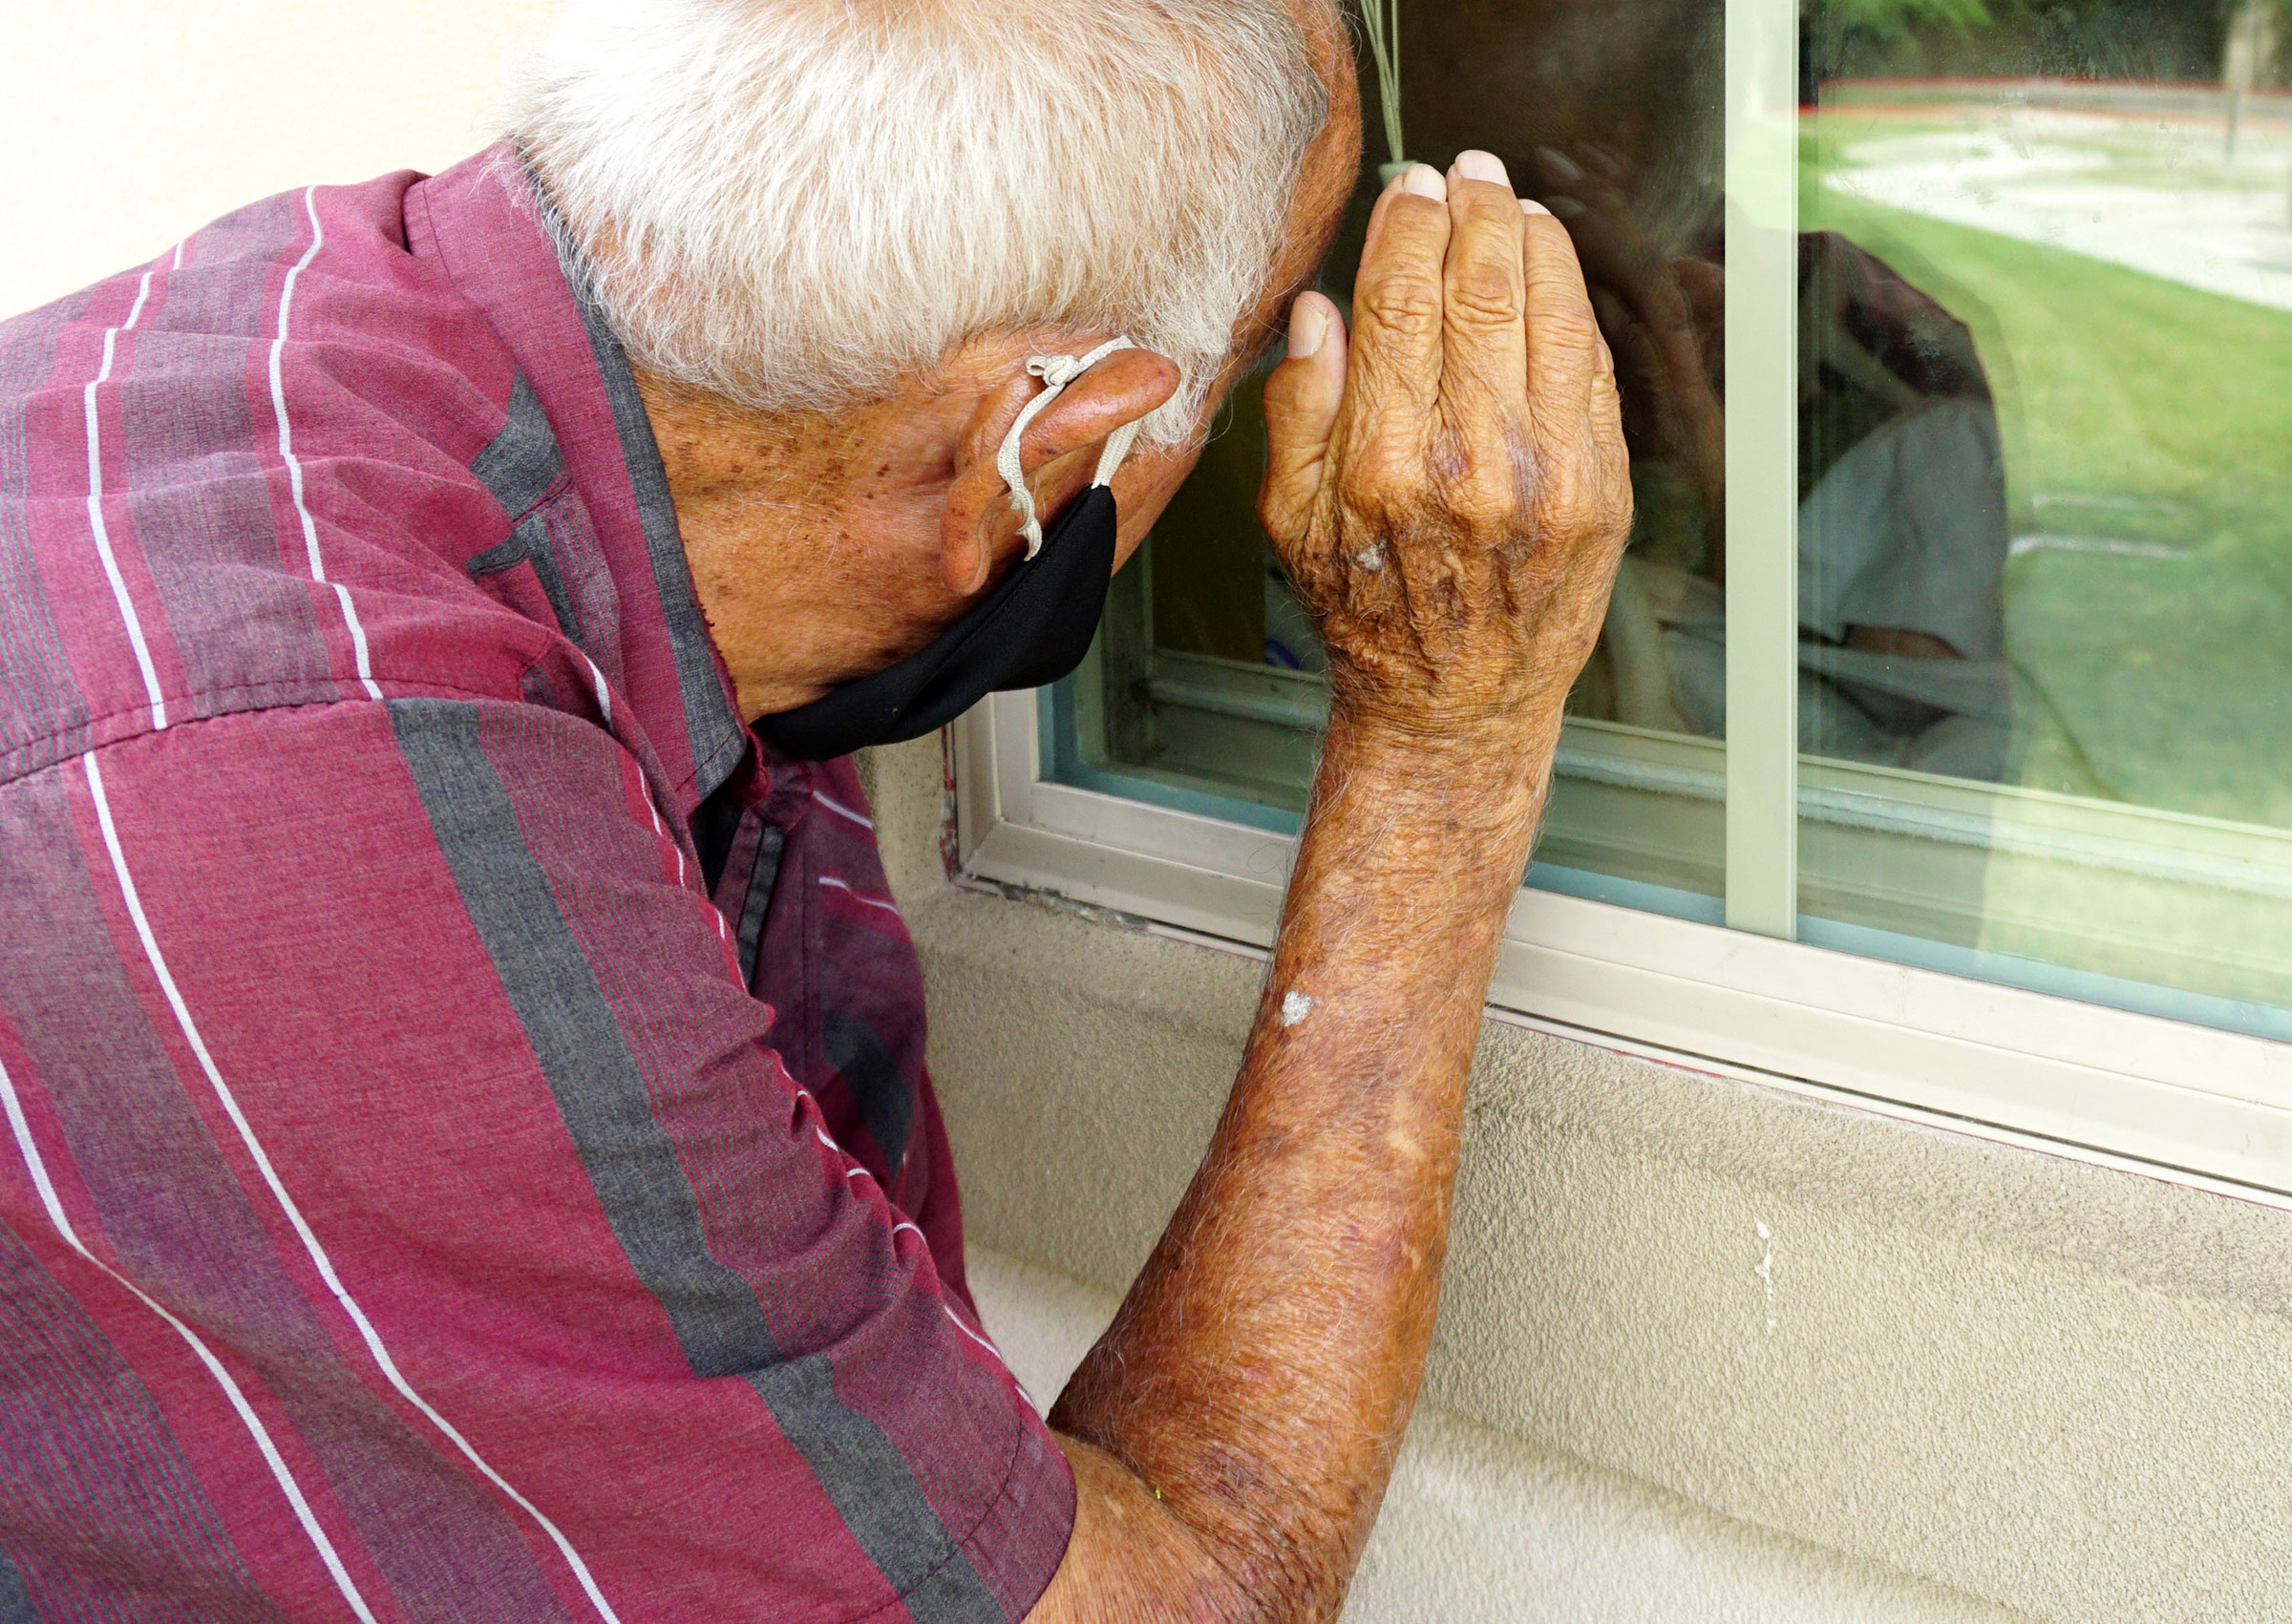 Seventy-year-old Jacobo Garcia visits his wife of 54 years Aurora Garcia on Aug. 25, 2020, at her bedside window just to see her smile at Fox Hollow Post Acute Nursing Home in Brownsville, Texas. Jacobo visits Aurora everyday amid the COVID-19 pandemic.